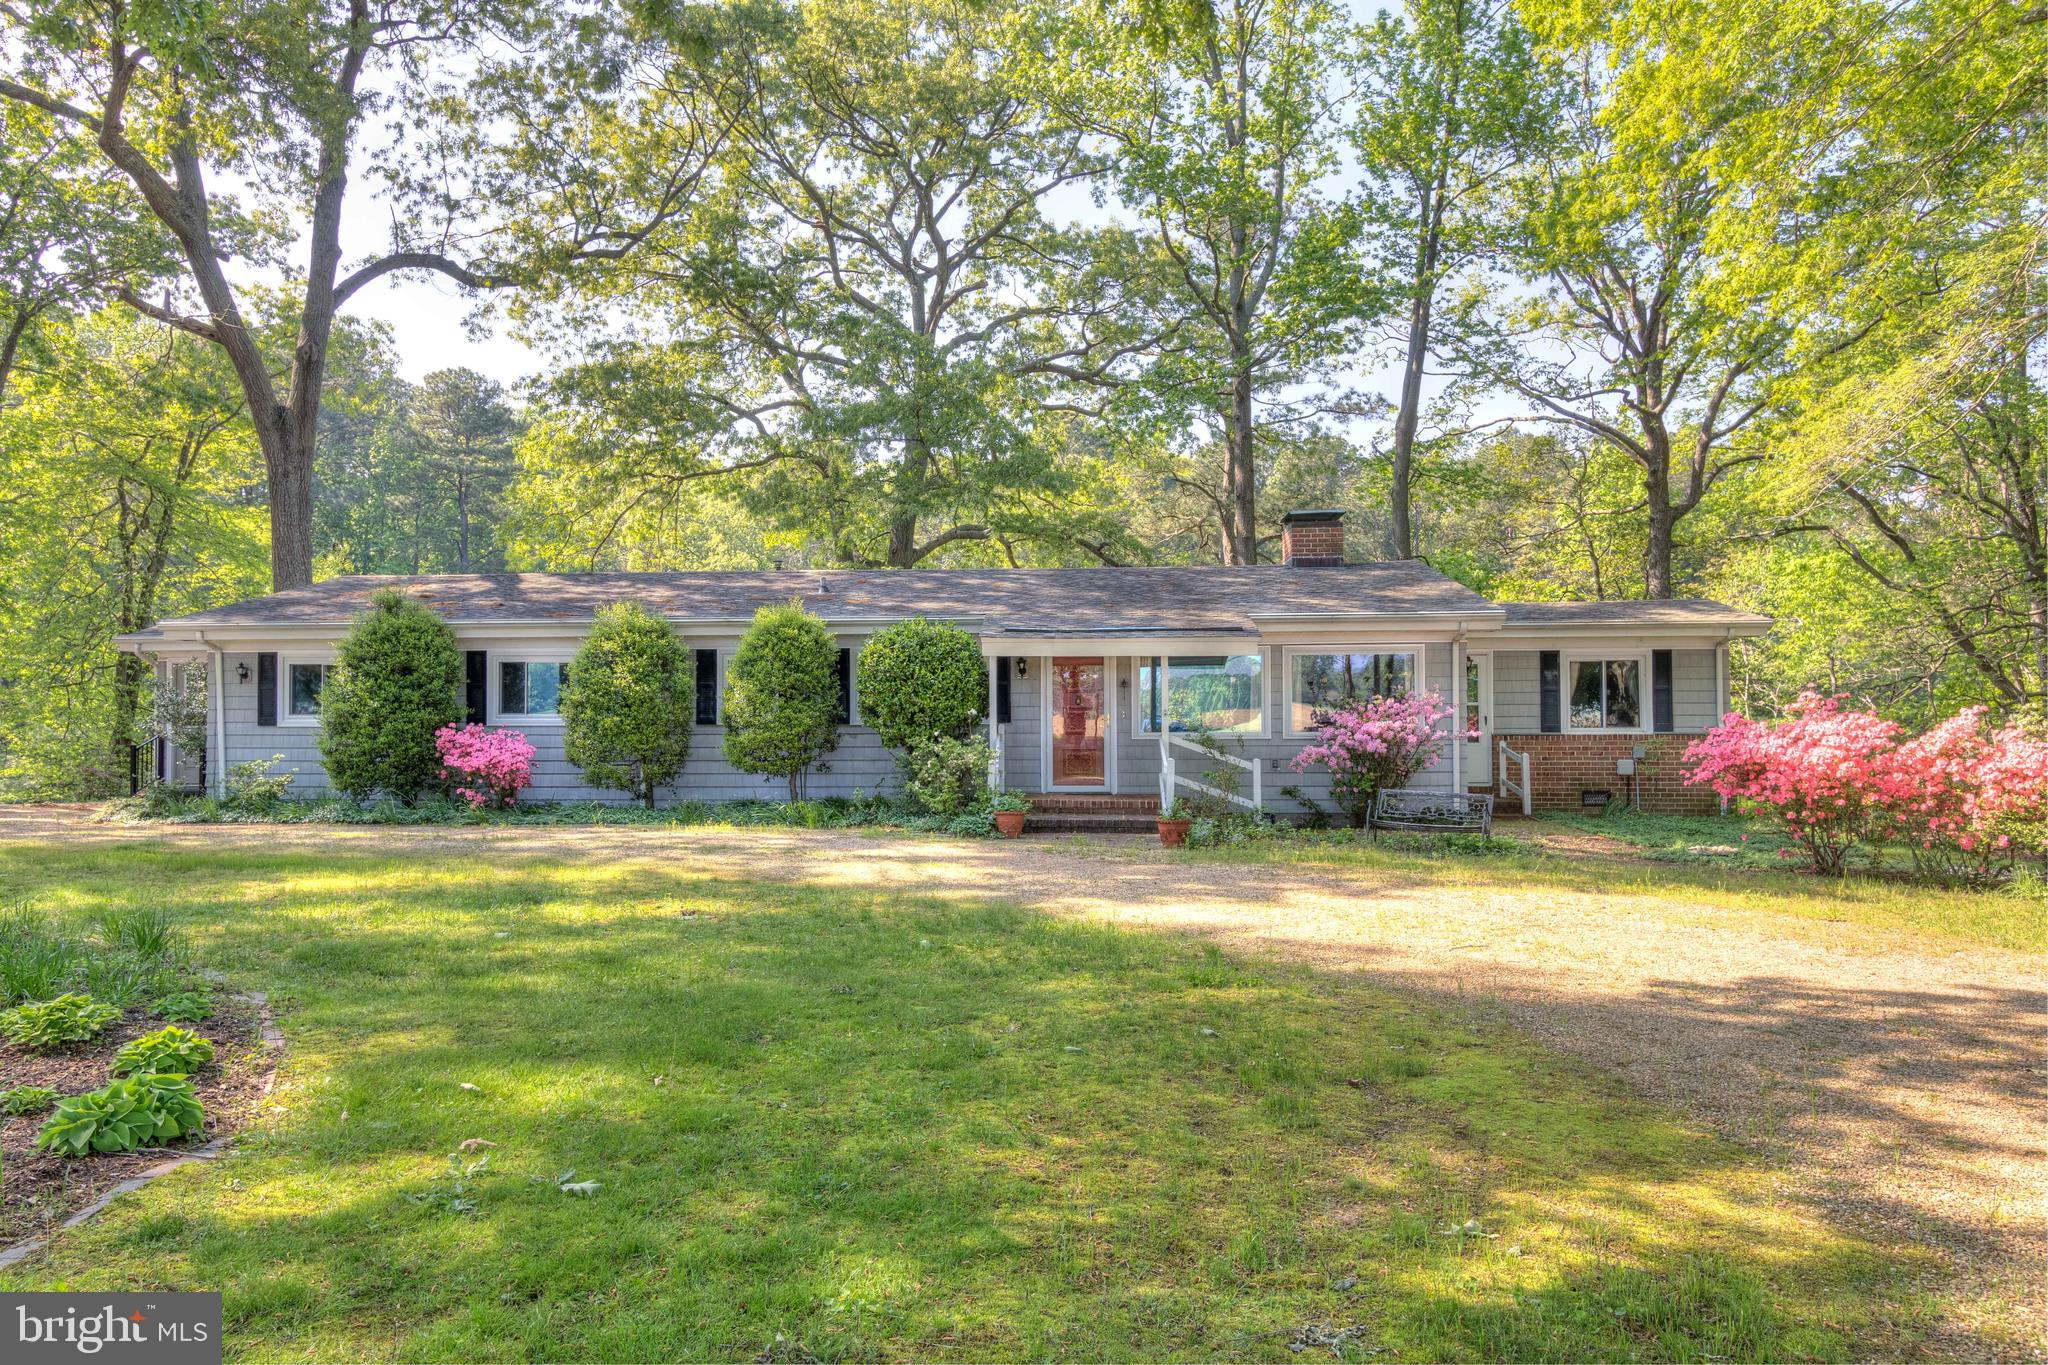 328 HOLLY HARBOR ROAD, REEDVILLE, VA 22539